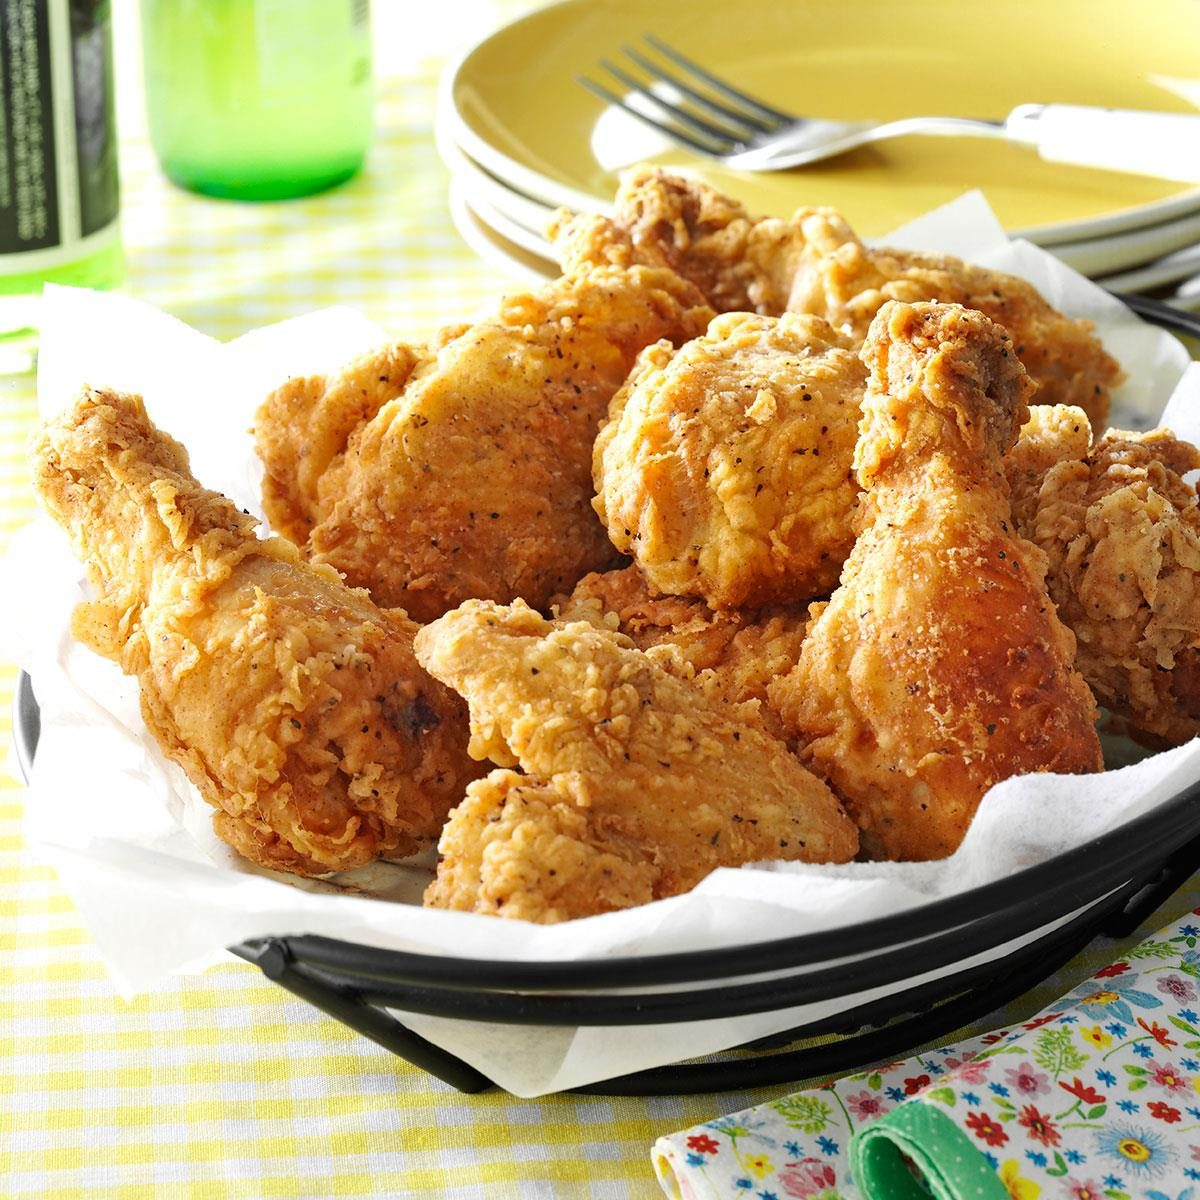 Crispy Fried Chicken Recipe | Taste of Home